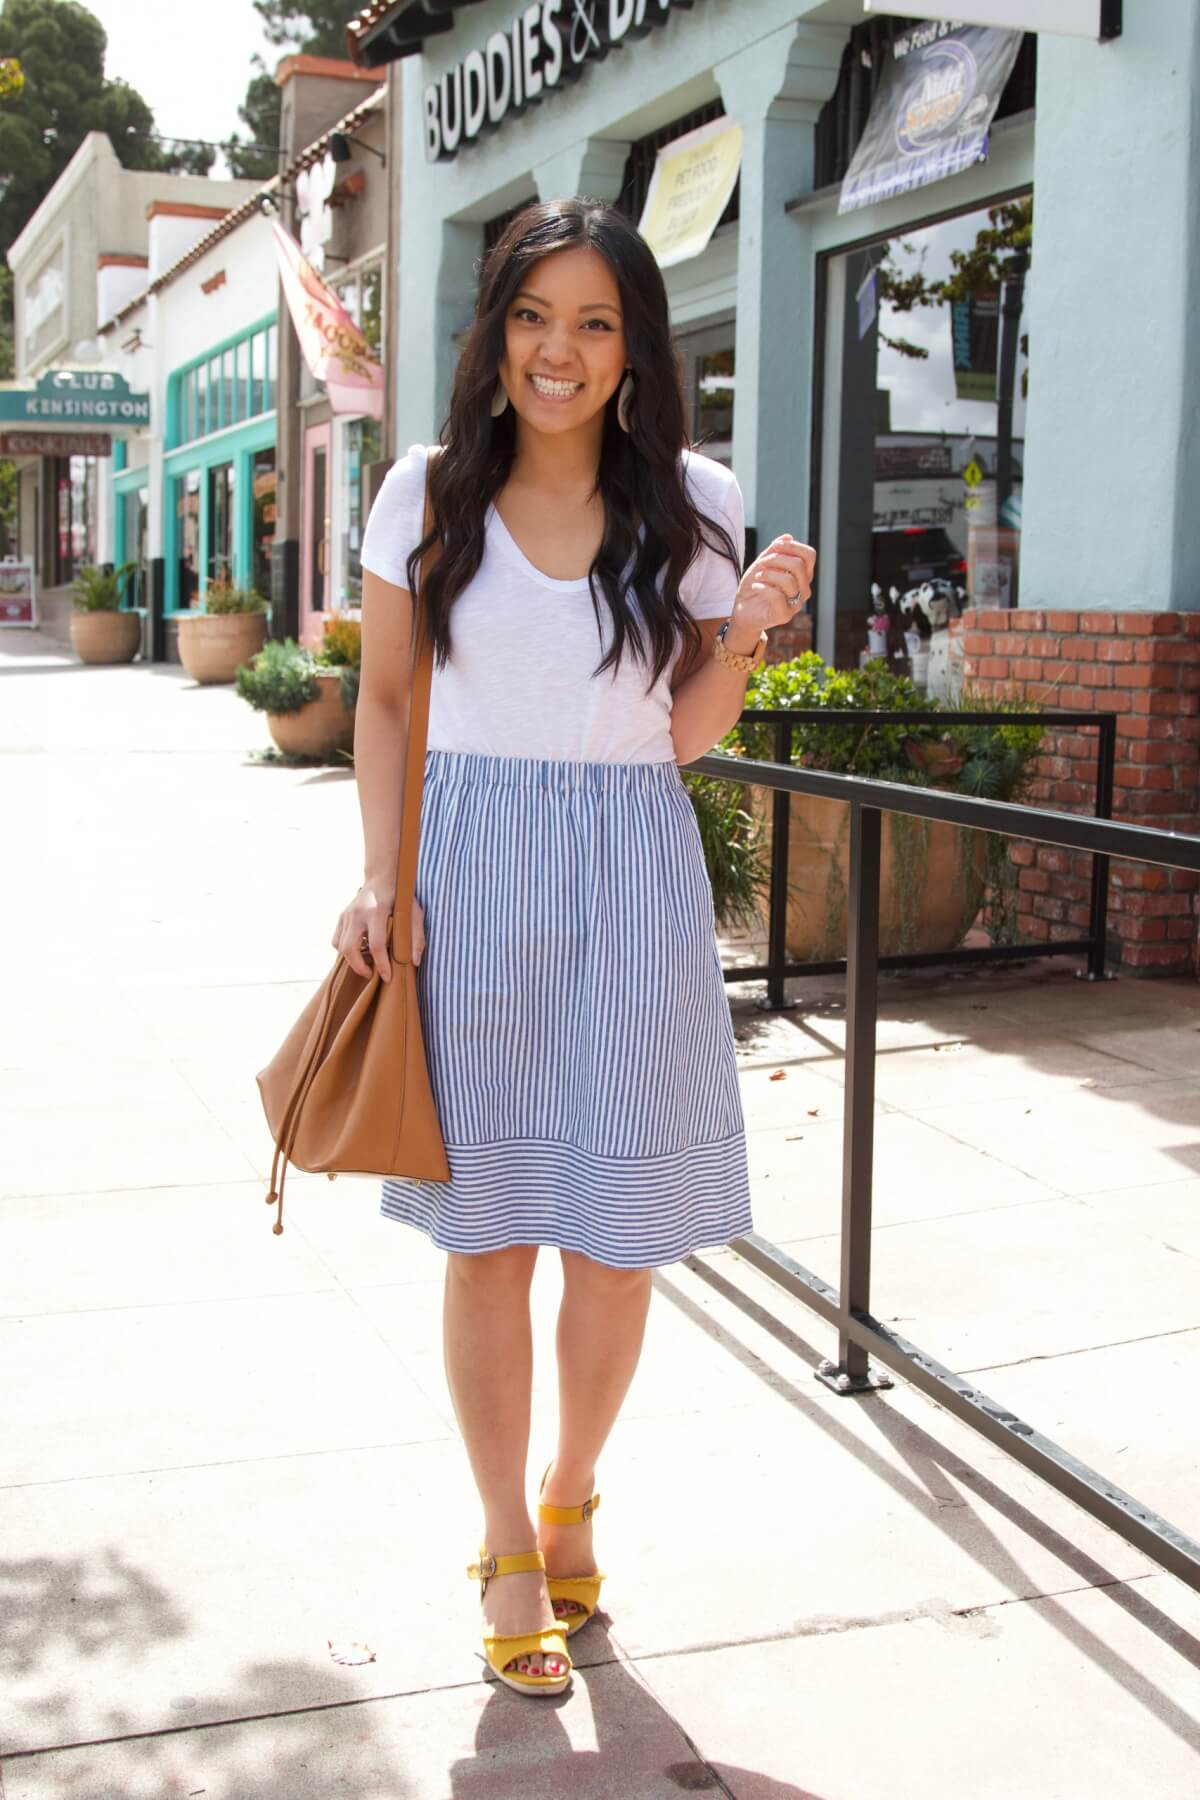 Classic Outfit: white tee + striped skirt + yellow heels + tan bag